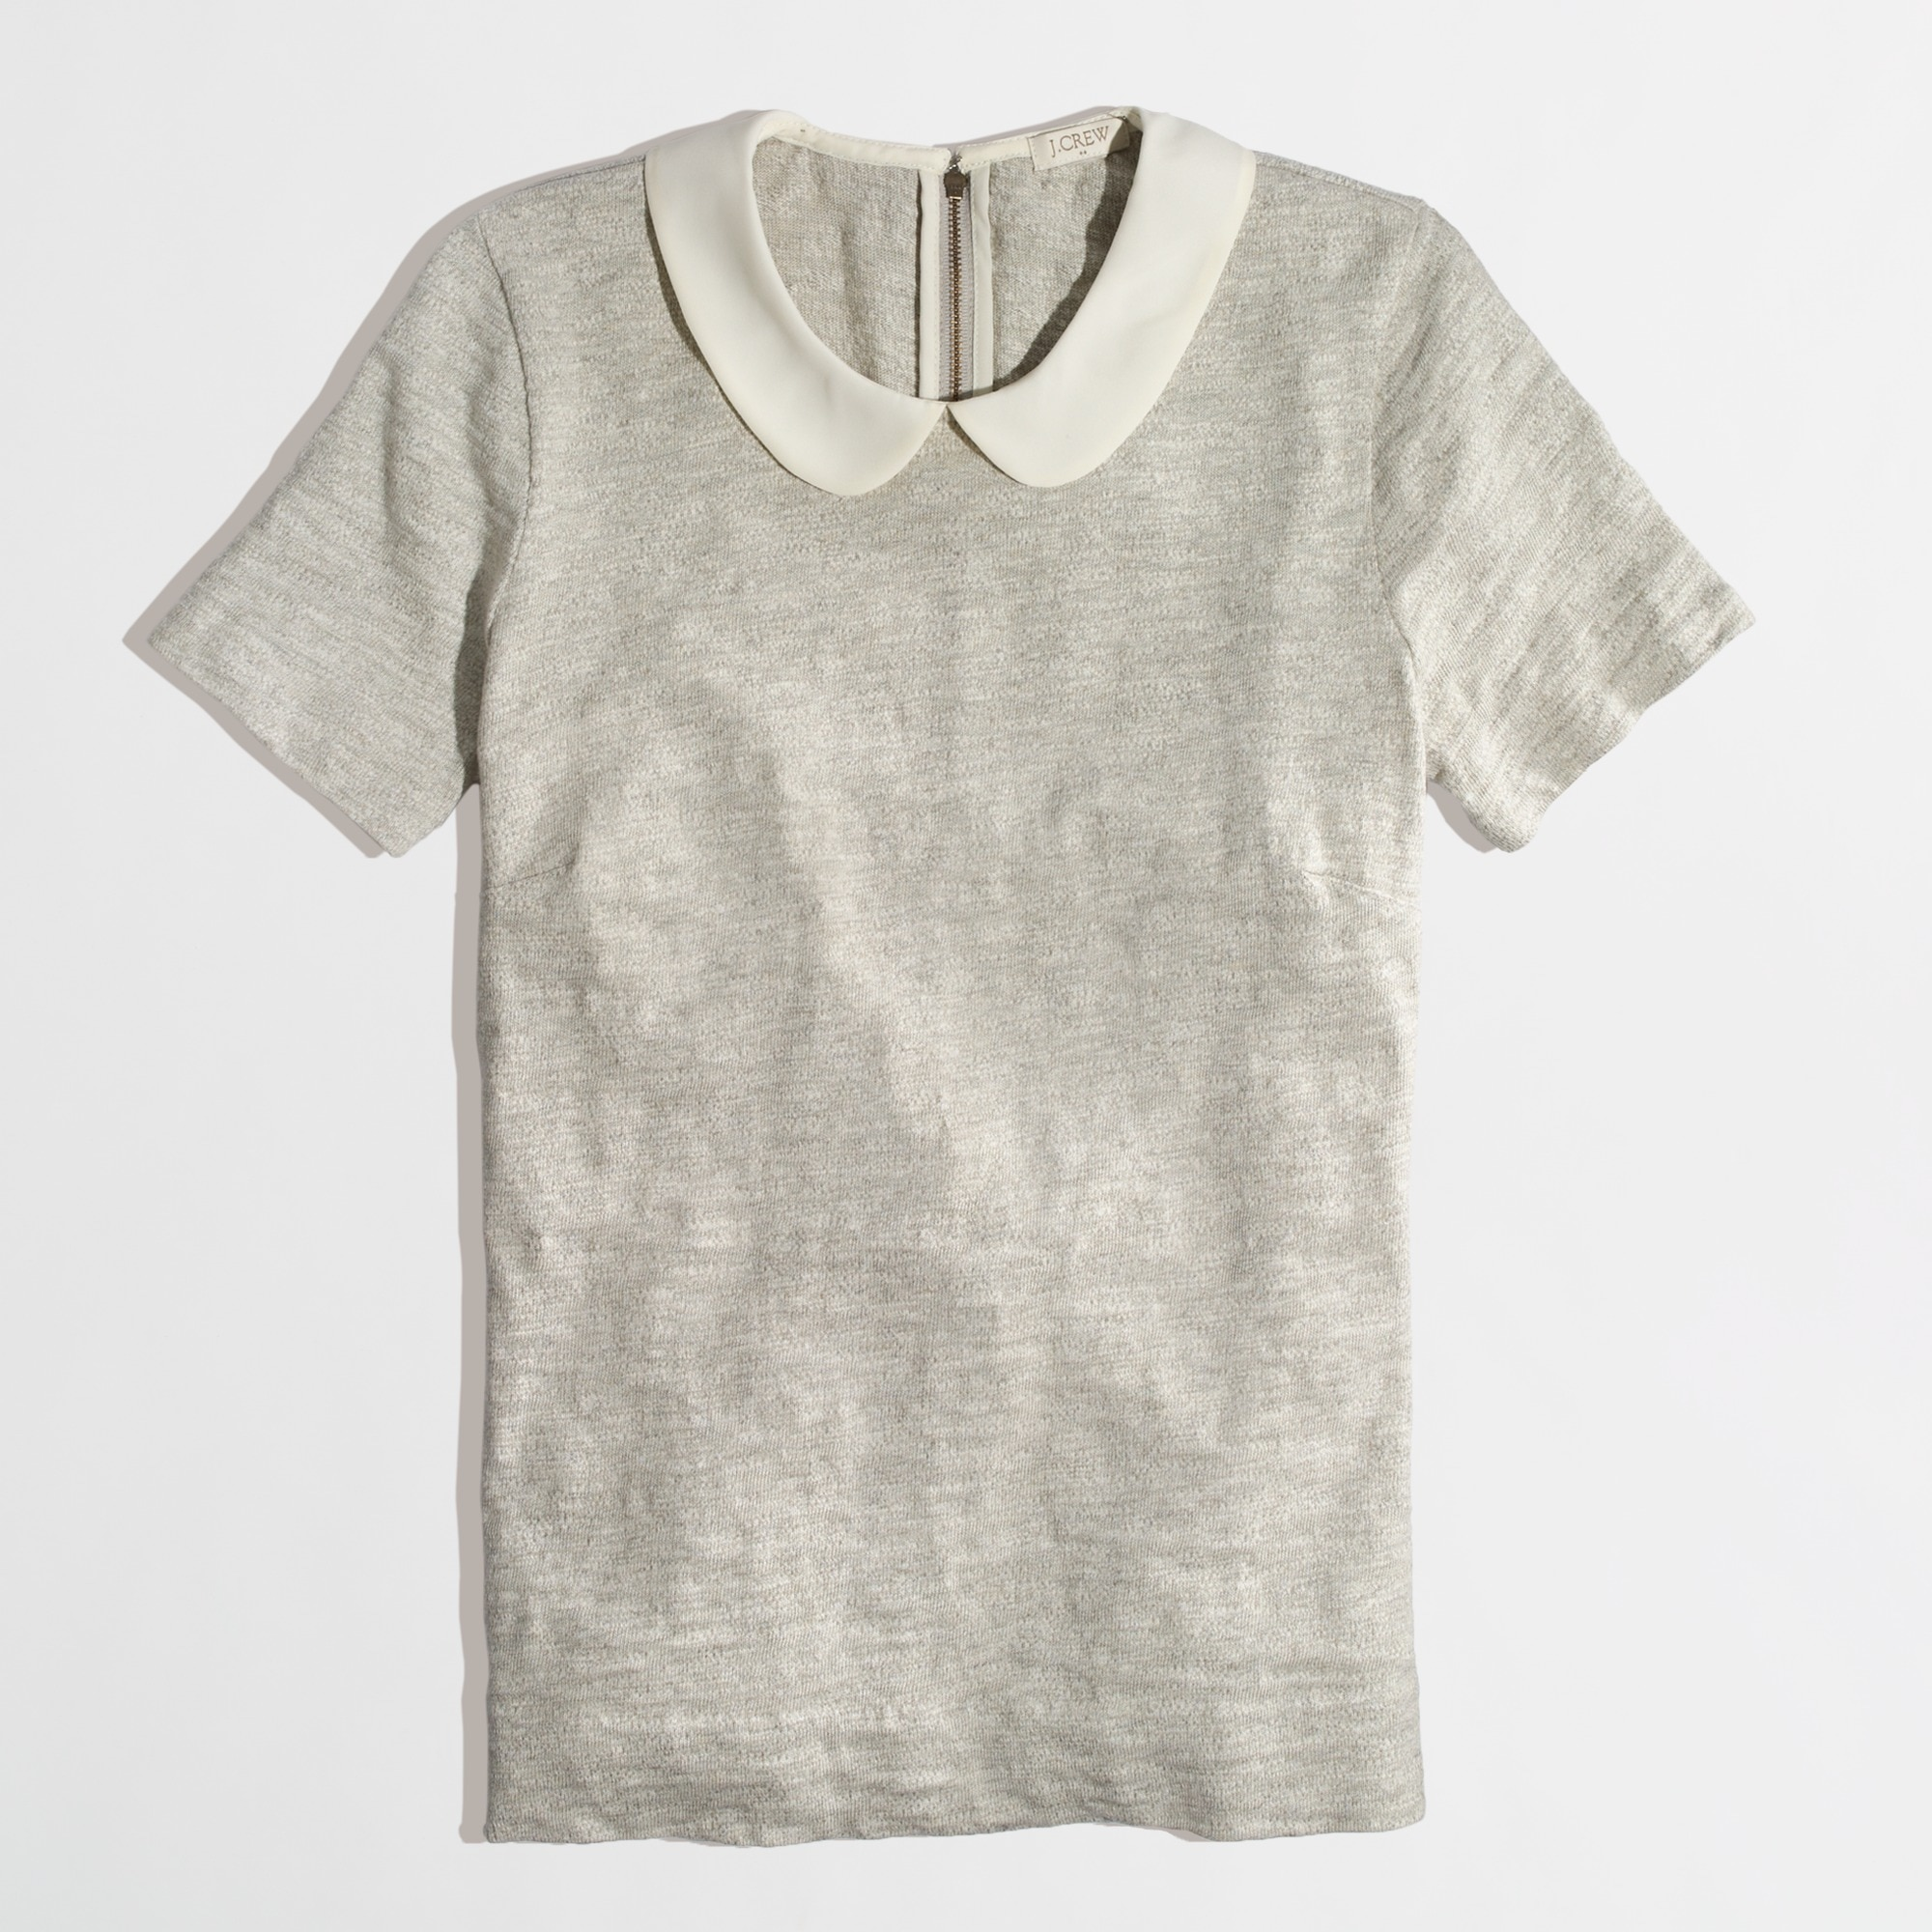 factory peter pan collar tee :